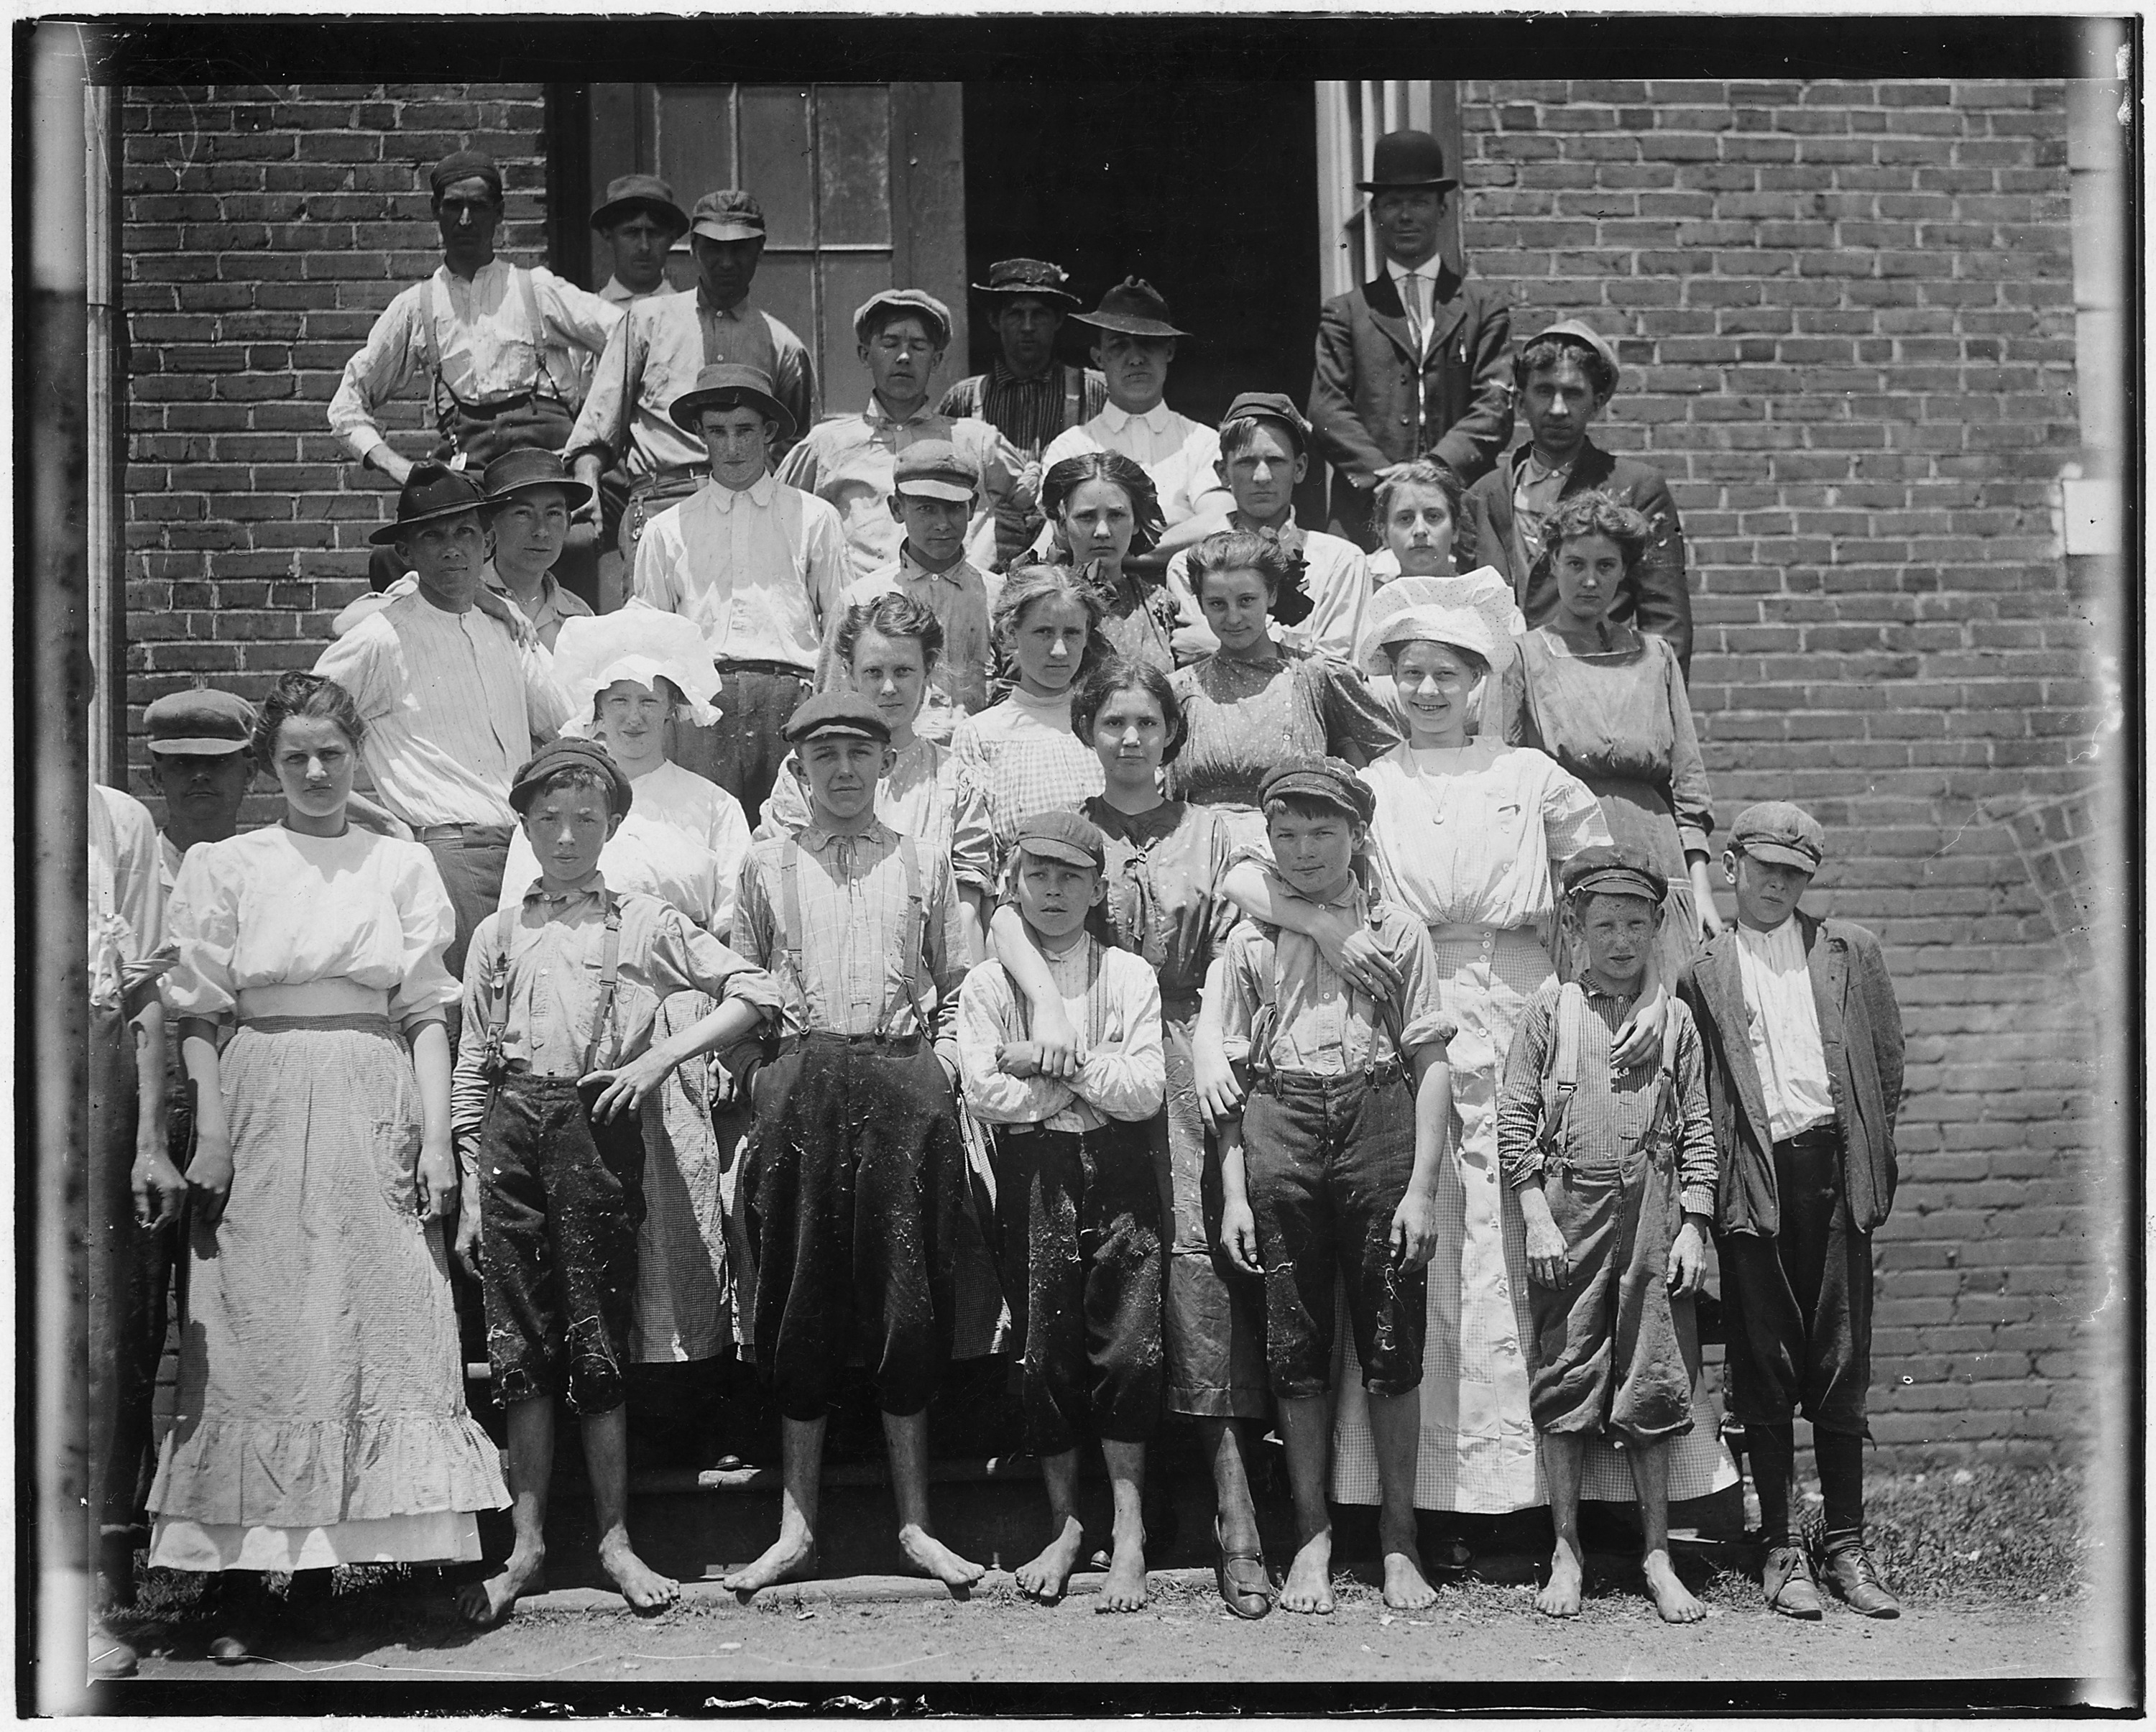 A typical group of workers in the Aragon Mills. Rock Hill, S.C. - NARA - 523537